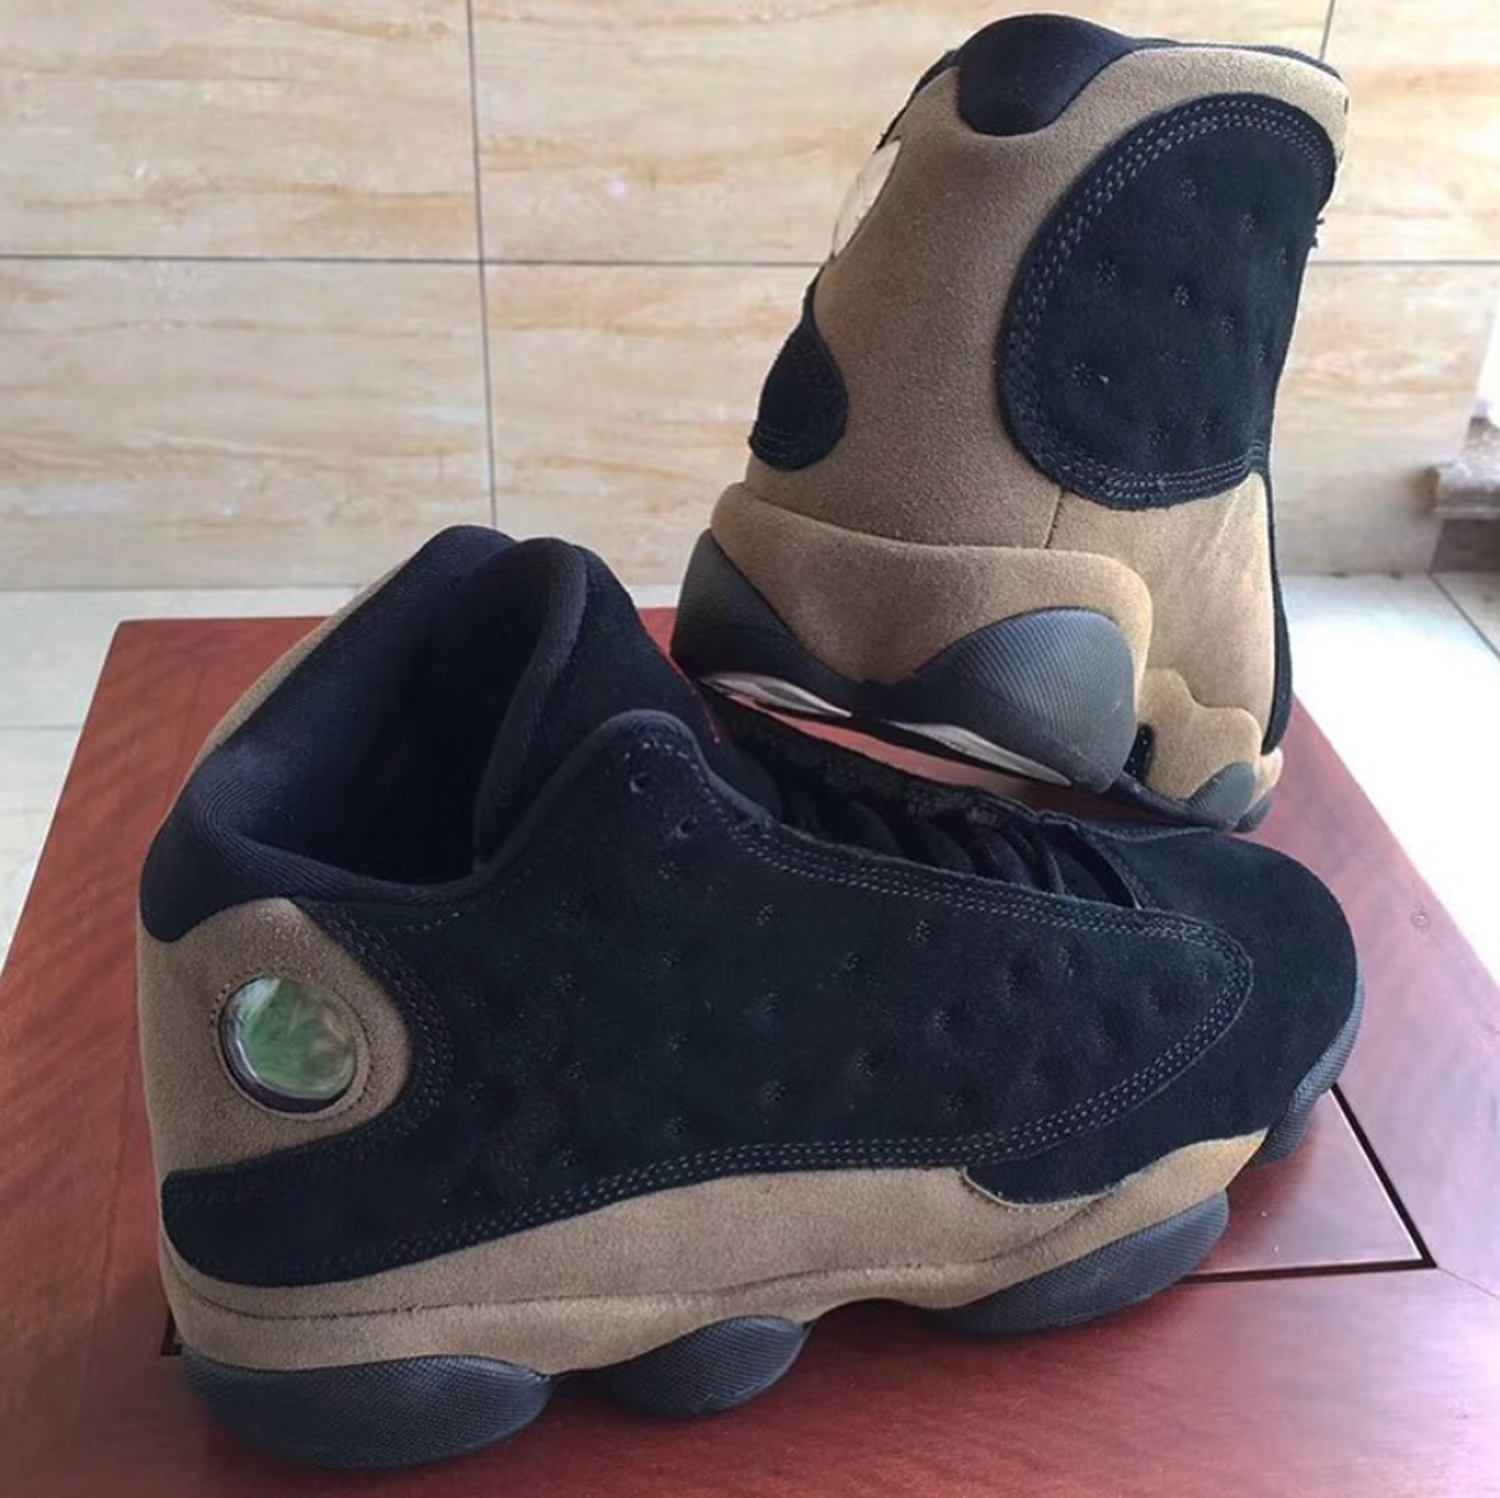 buy popular 36135 dbc57 Another Look at the Air Jordan 13 'Olive' Shows Suede Uppers ...